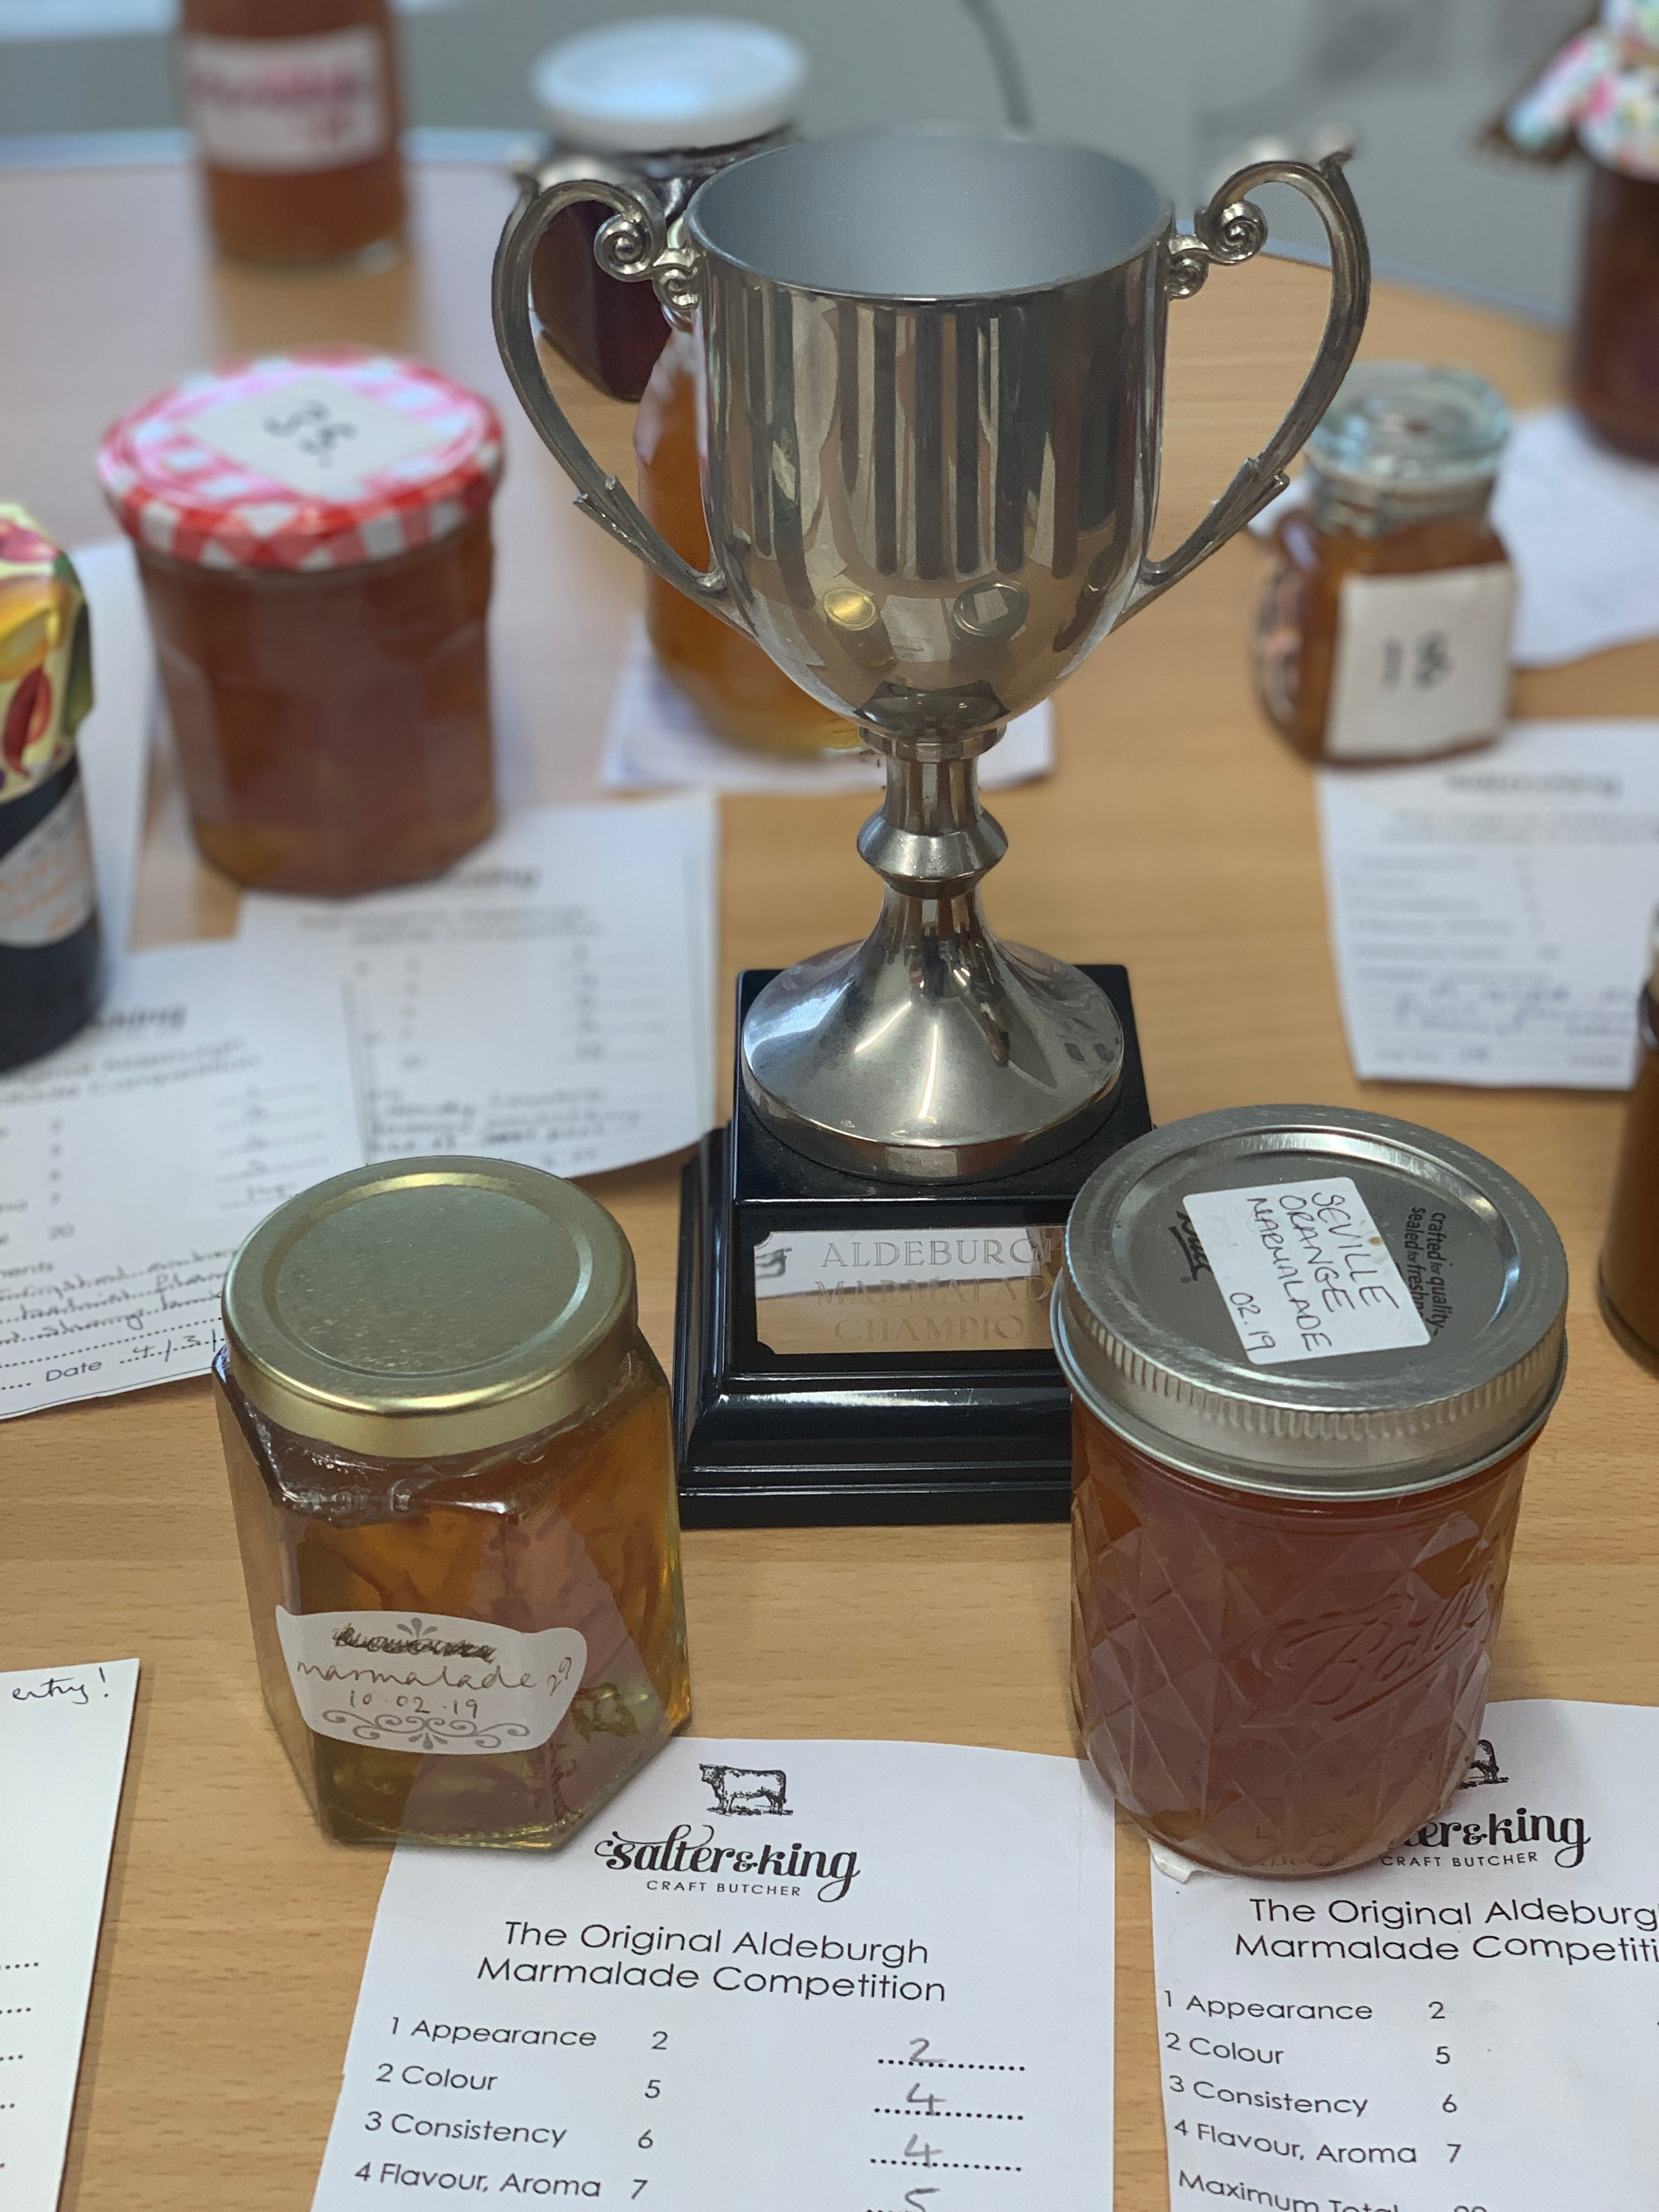 marmalade cup and entries.JPG